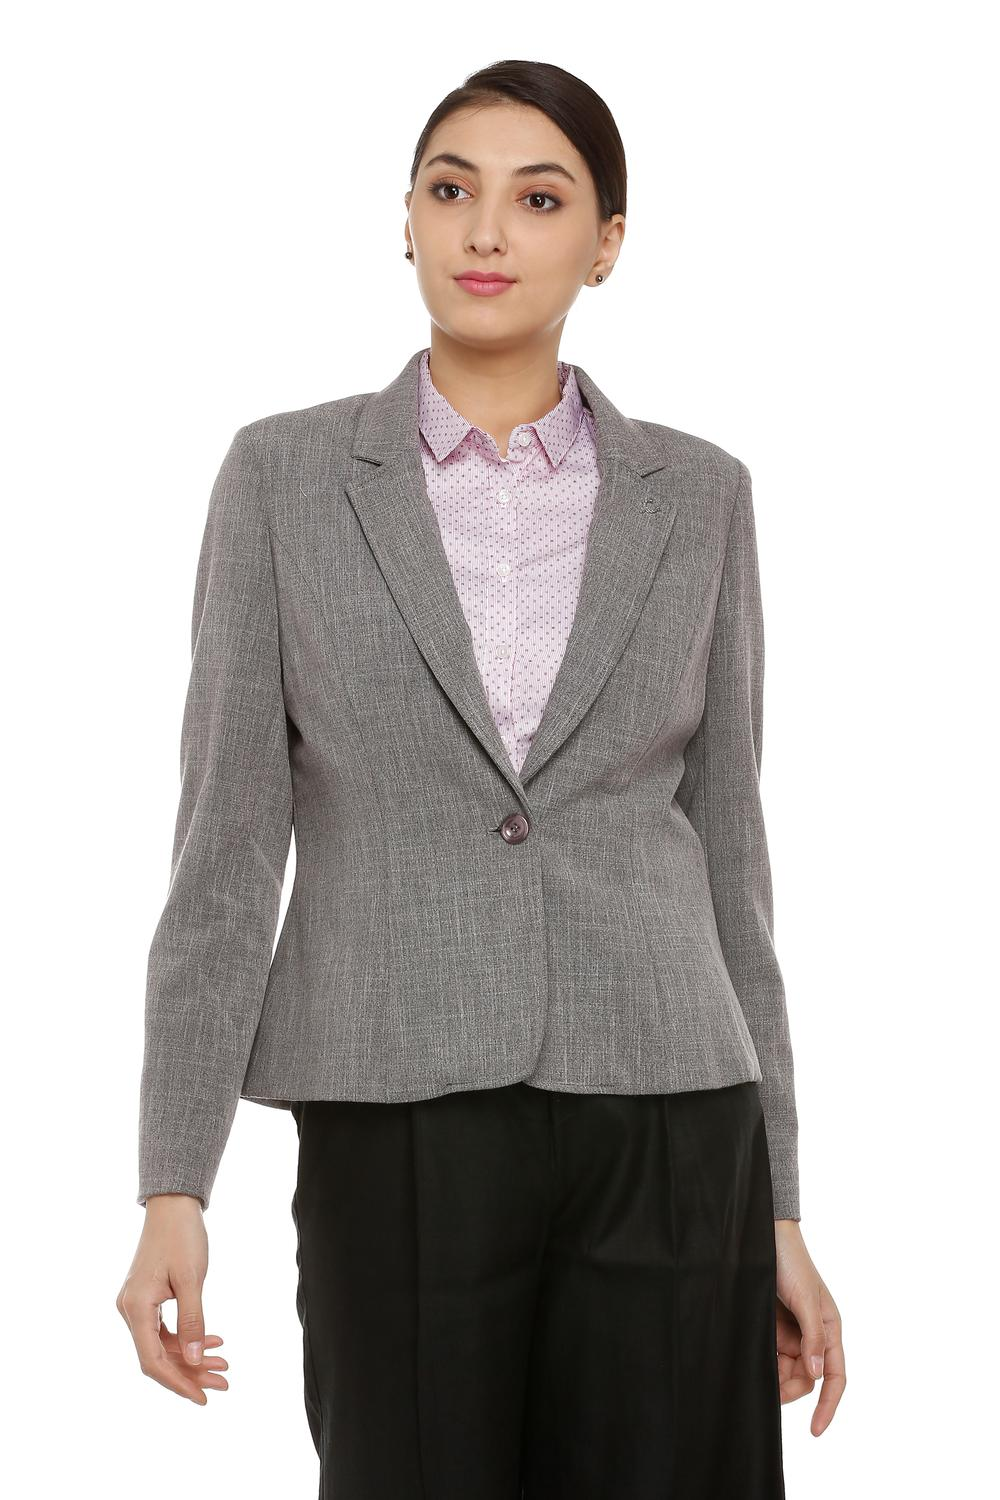 uk cheap sale top-rated discount release date Solly Suits & Blazers, Allen Solly Grey Blazer for Women at Allensolly.com